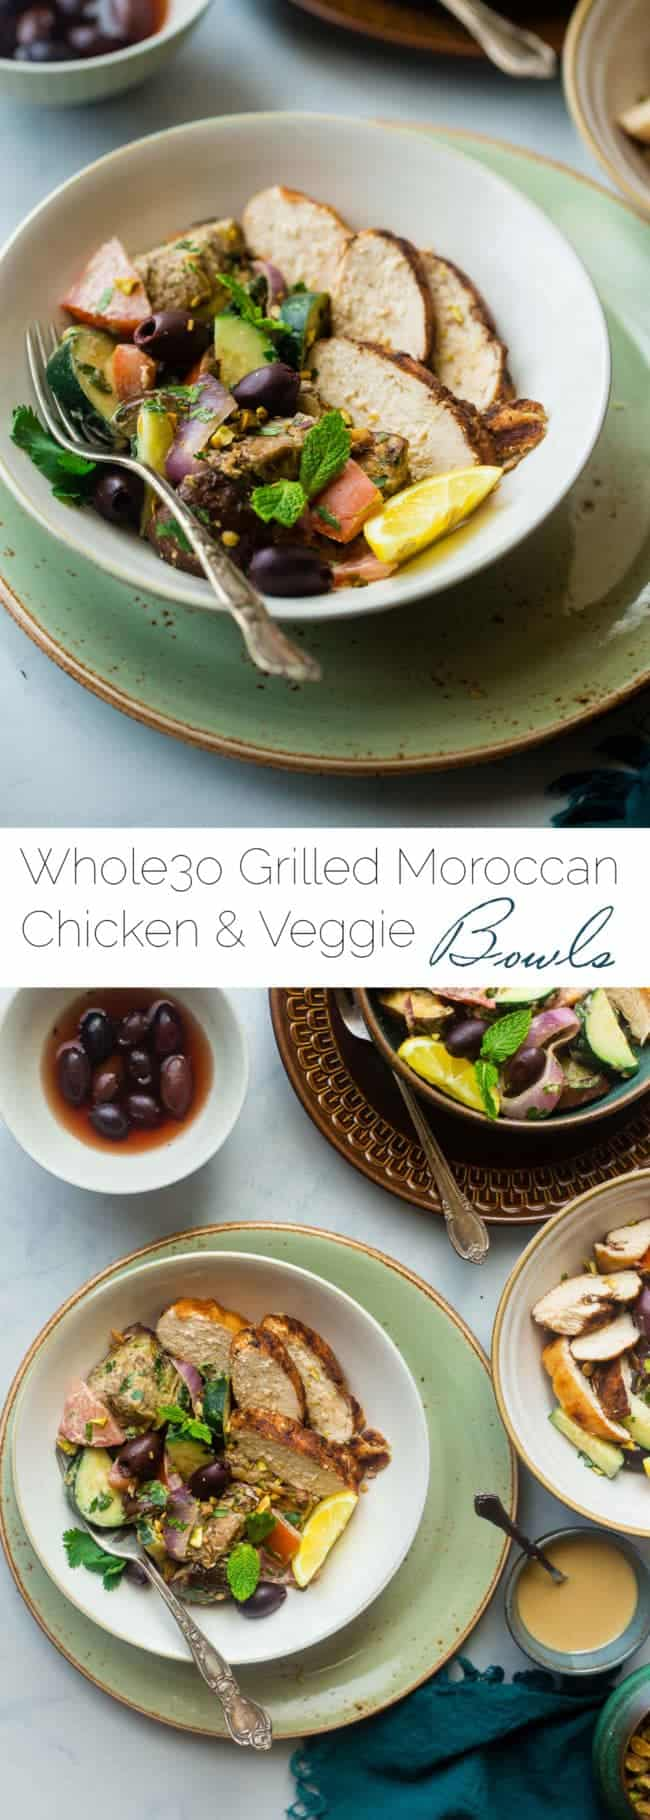 Paleo Grilled Moroccan Chicken Bowls - These grilled Moroccan chicken bowls are loaded with charred veggies, creamy tahini and spicy chicken! They're a quick and easy dinner that's paleo friendly and Whole30 compliant!   Foodfaithfitness.com   @FoodFaithFit